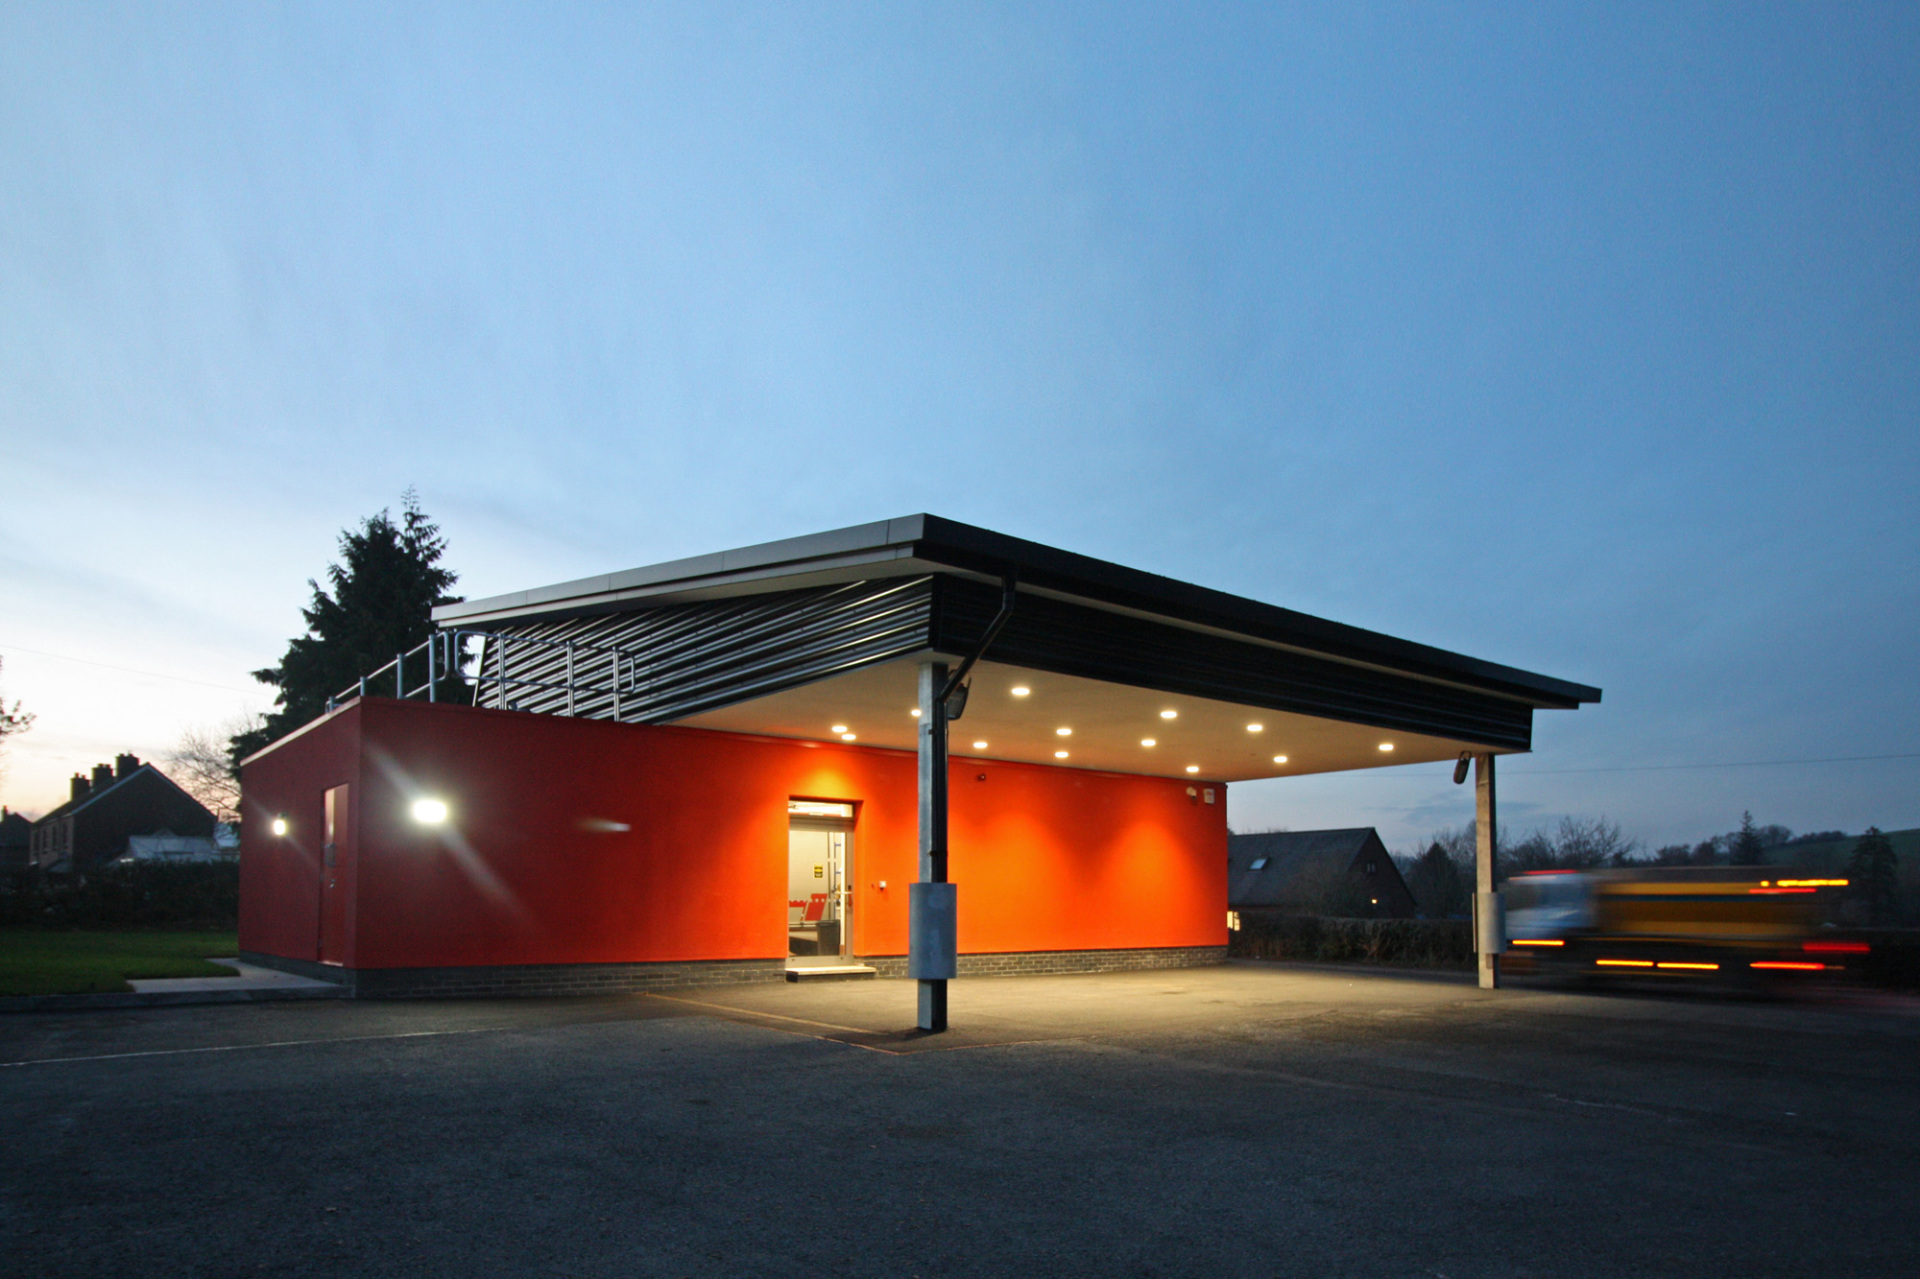 Remodel of Clun Fire Station by BHN